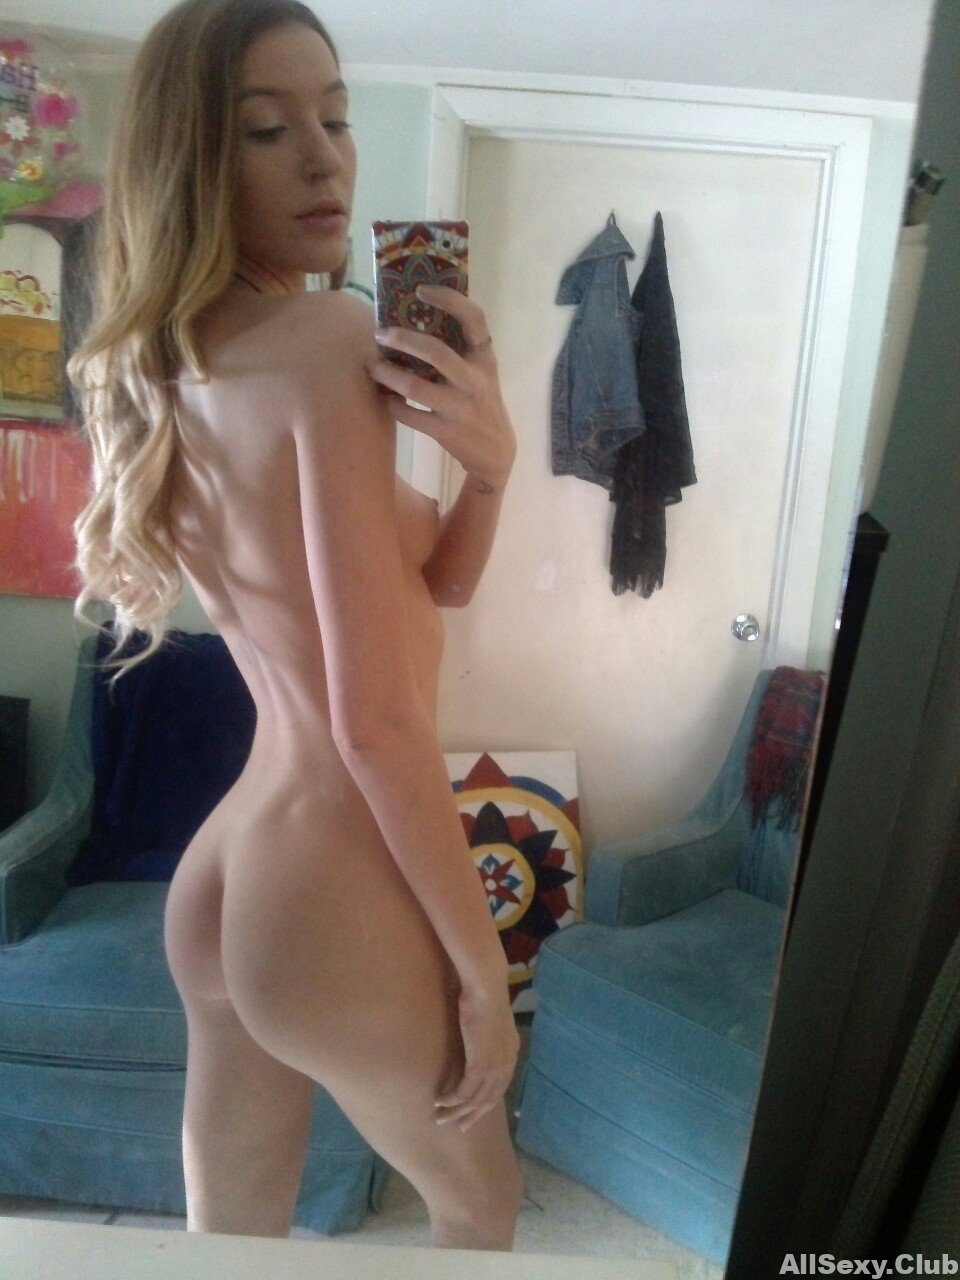 Tight Blonde Topless In Tiny Shorts Selfie